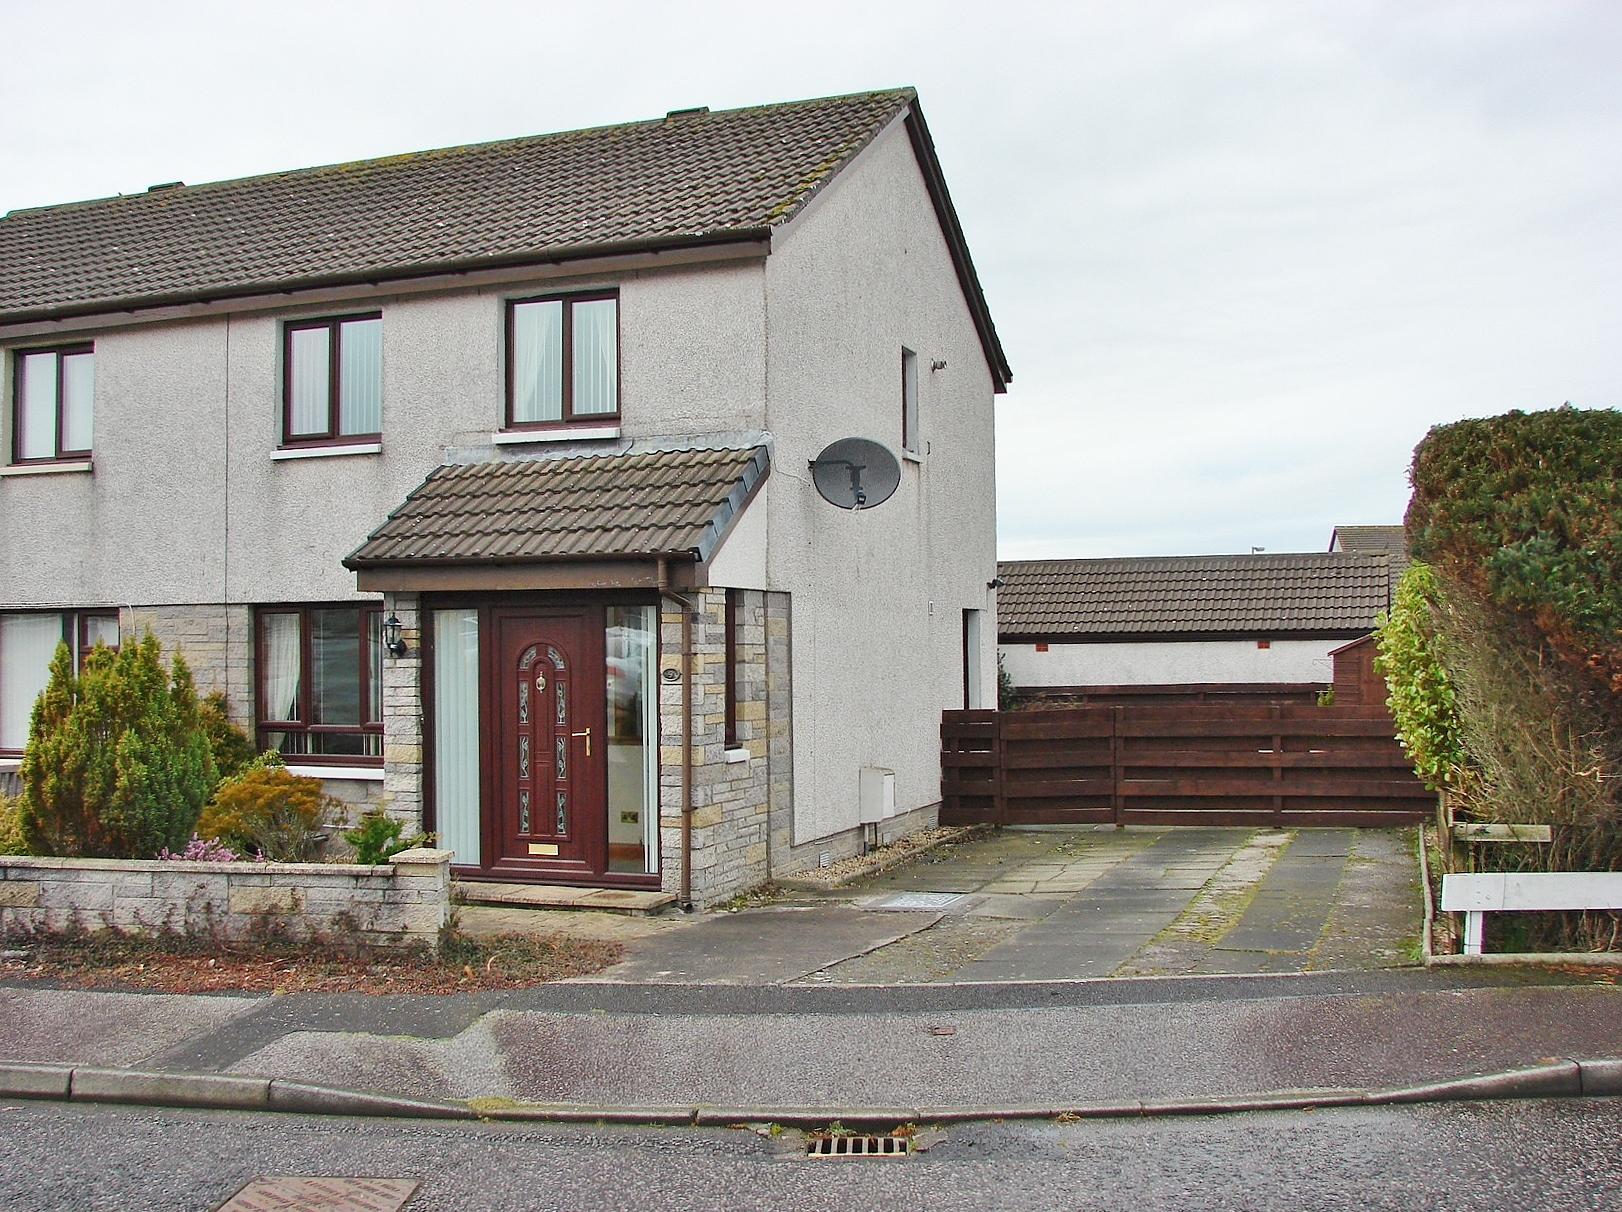 Photograph of 9 Sheuchan View, Stranraer